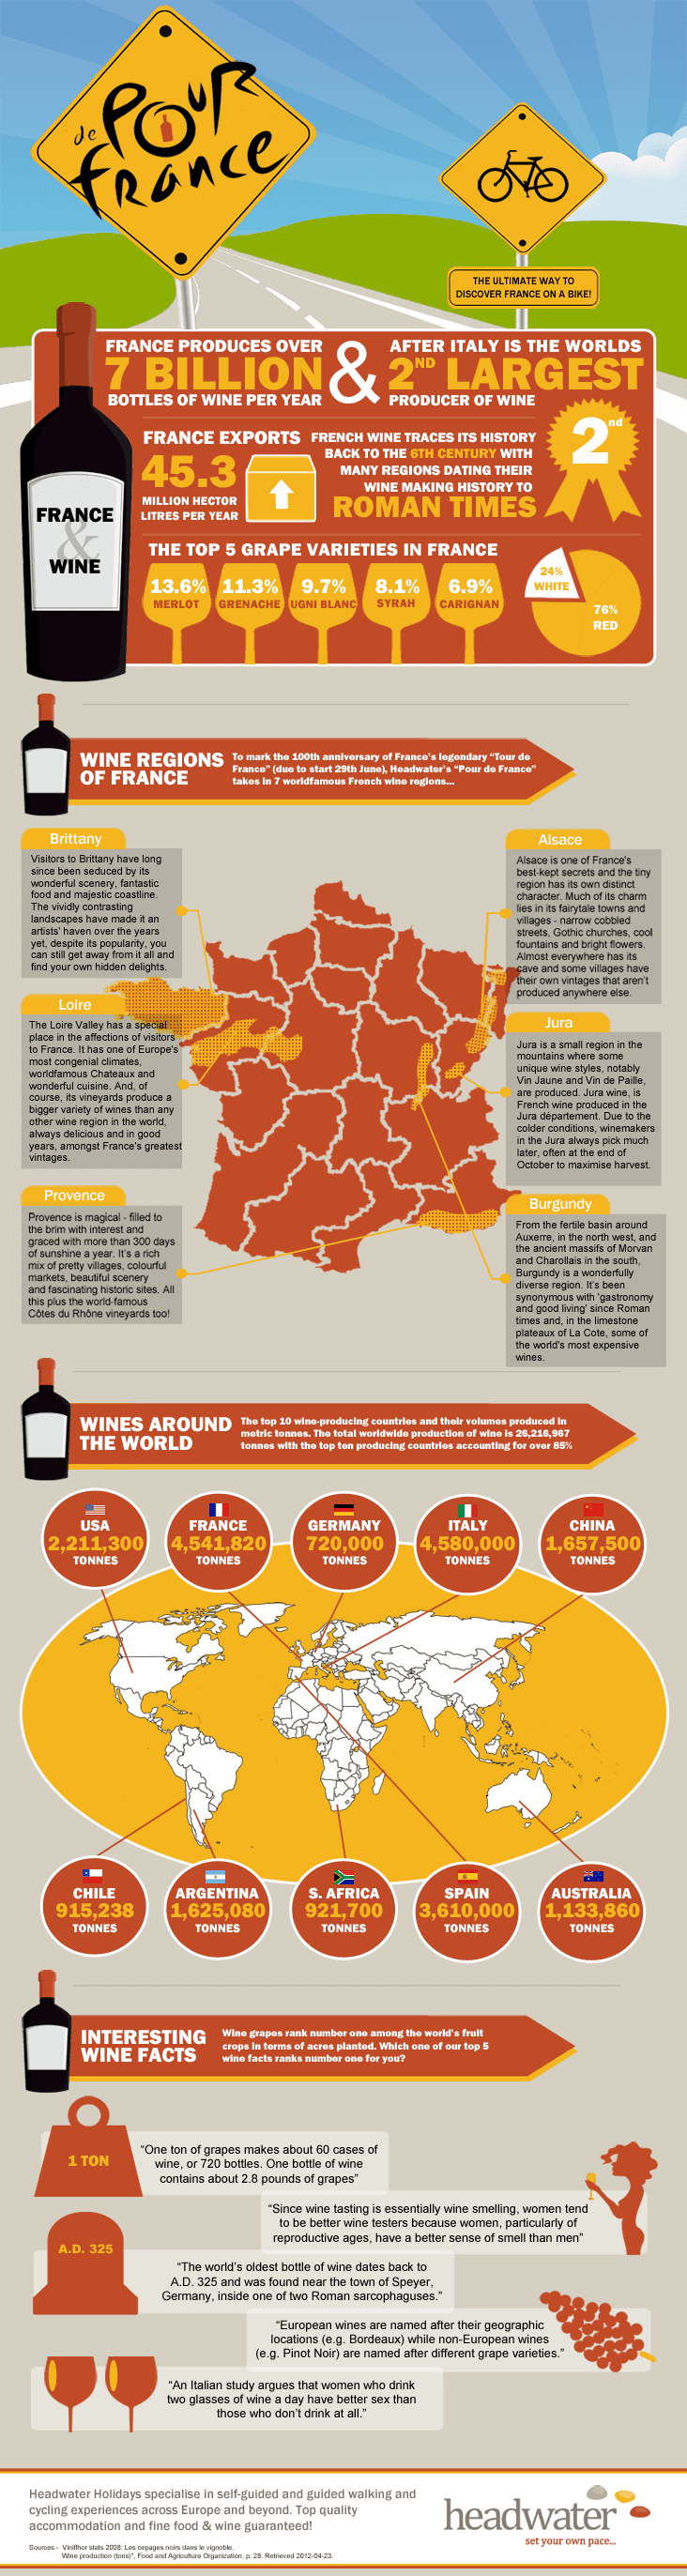 pour de france some corking facts about french wine